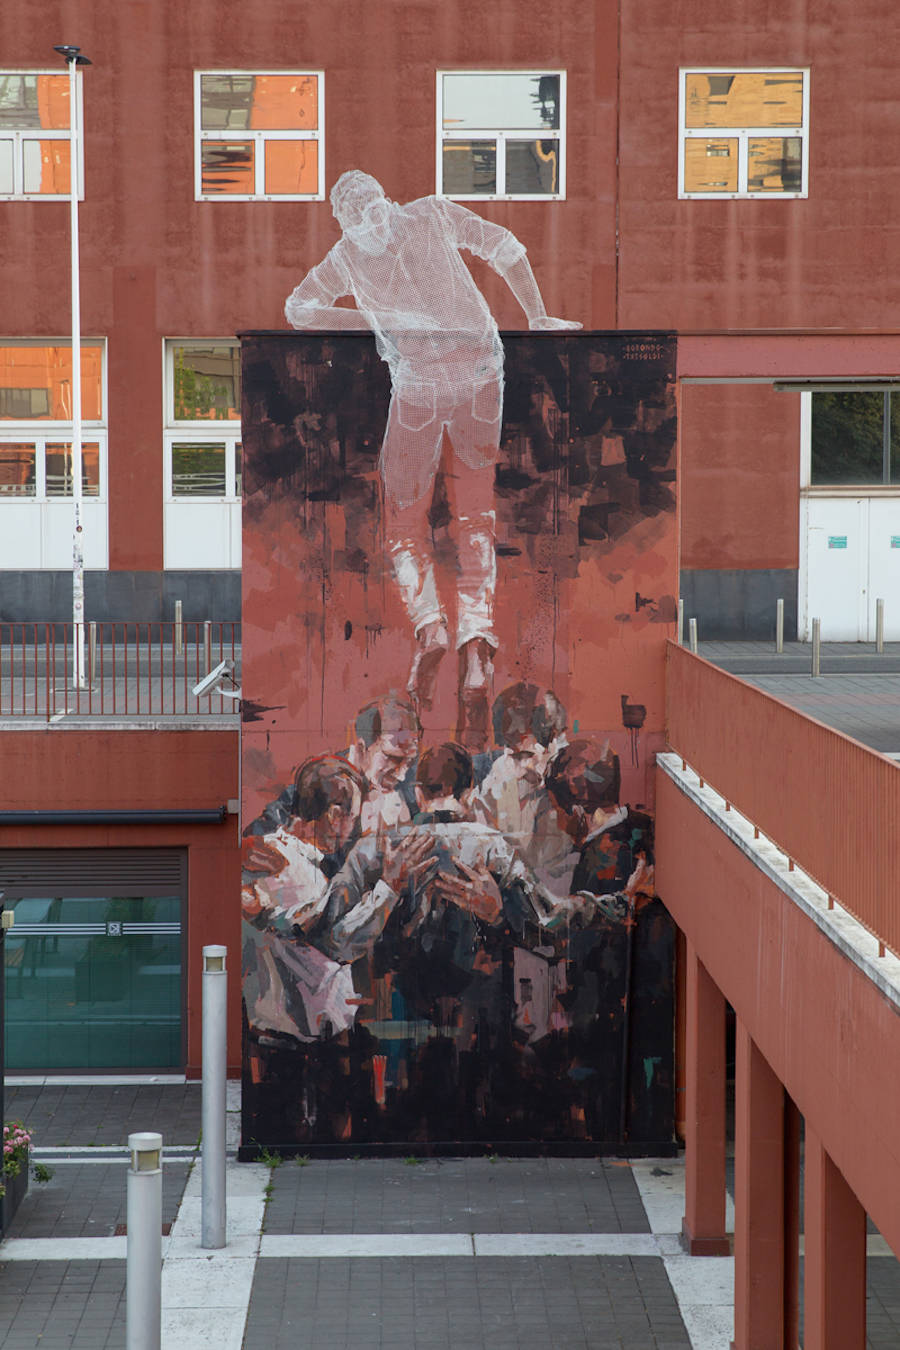 Edoardo Tresoldi , in collaboration with the street artist Gonzalo Borondo, Milan, 2015